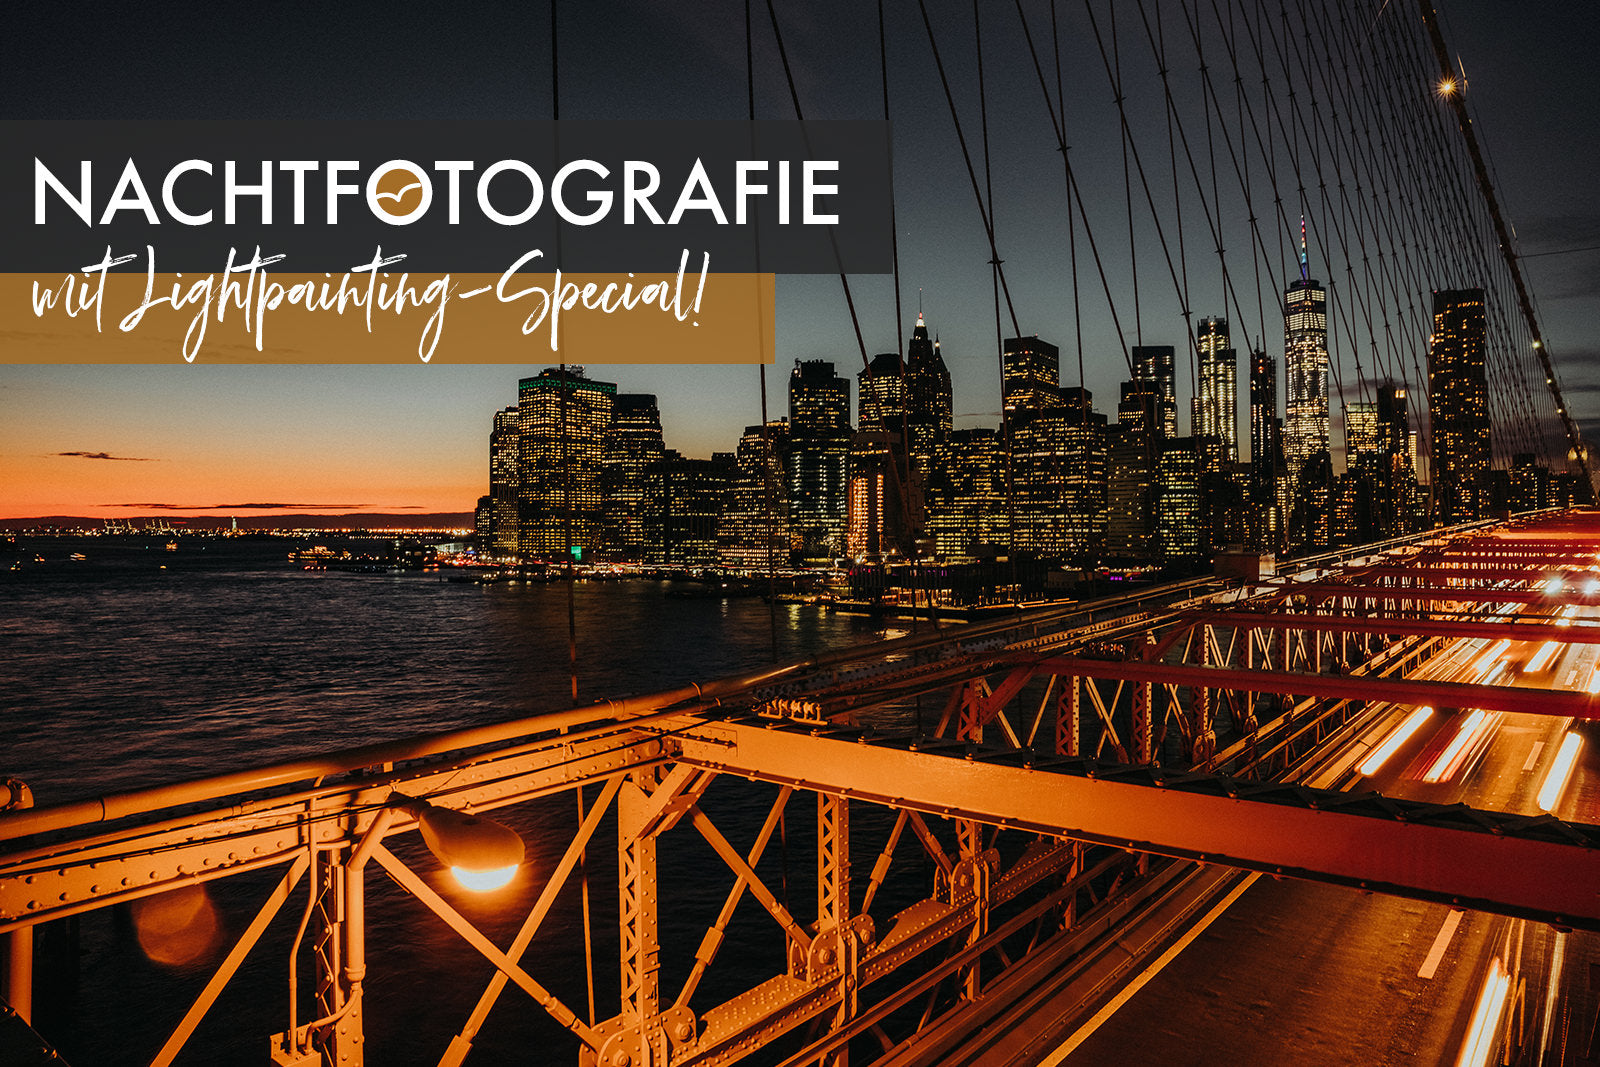 Fotoworkshop Nachtfotografie mit Lightpainting